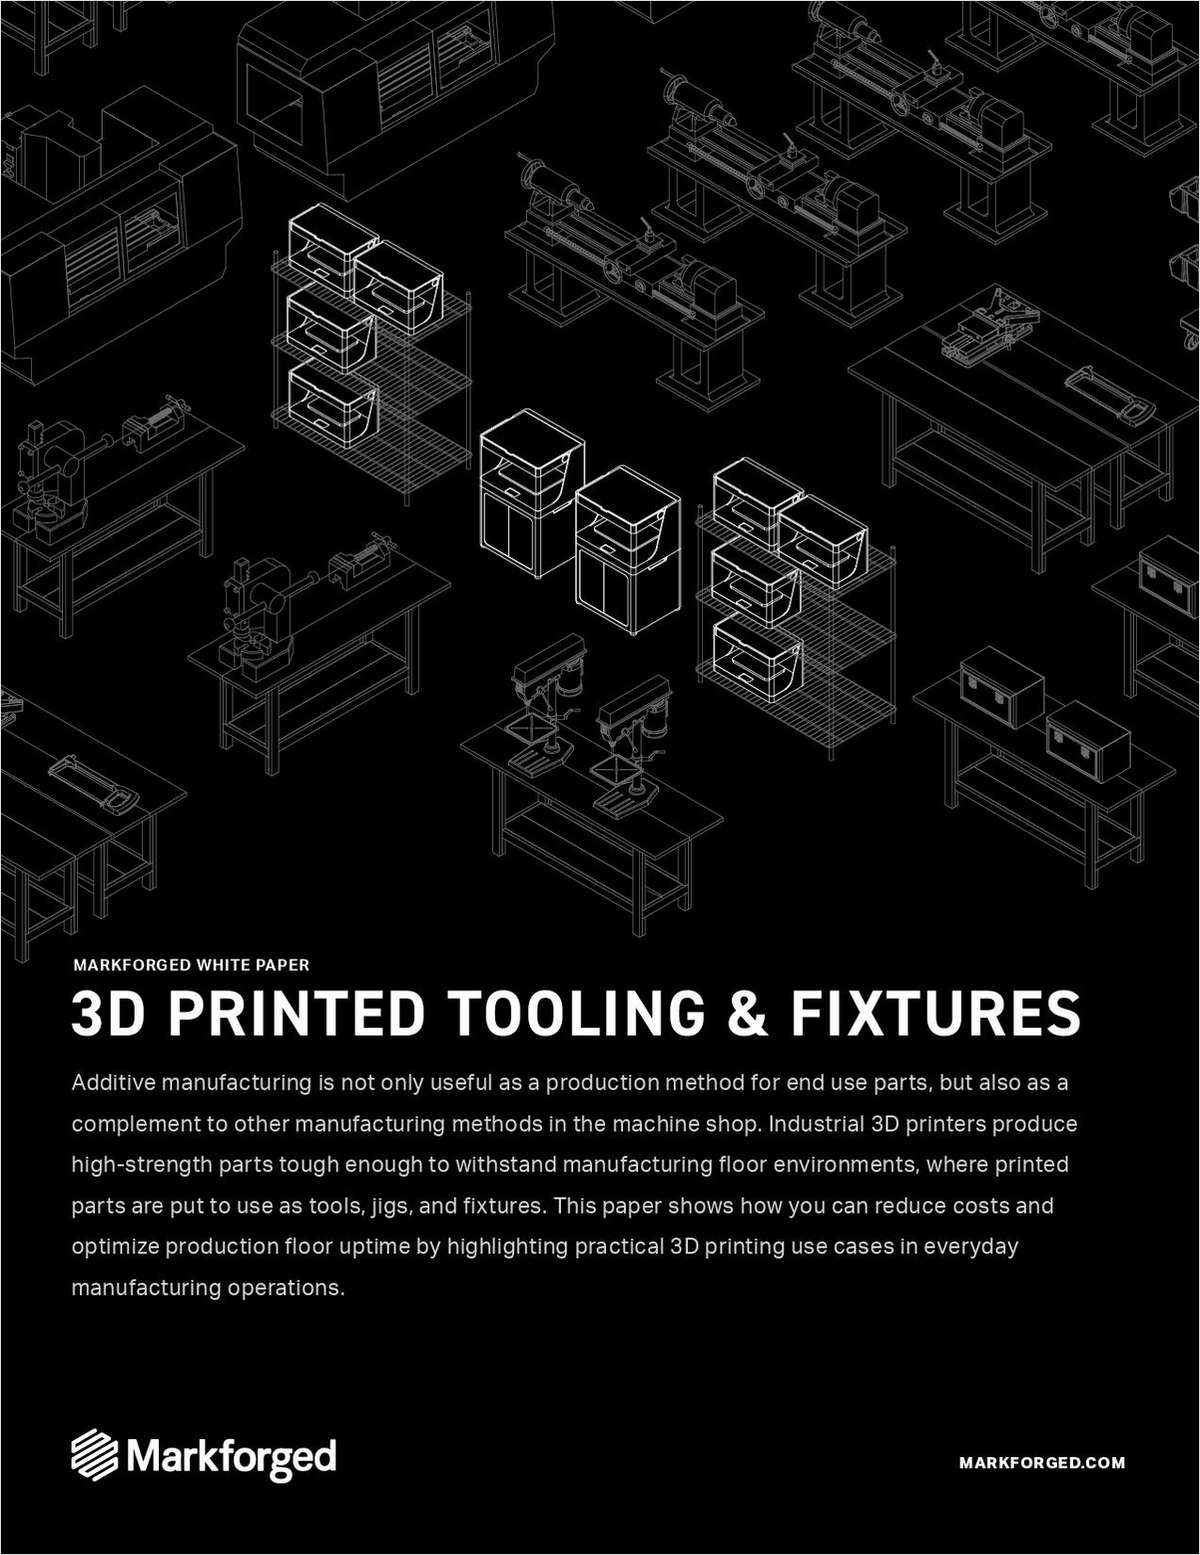 3D Printed Fixtures and Tooling: Reduce Lead Time, Material Costs, and Downtime